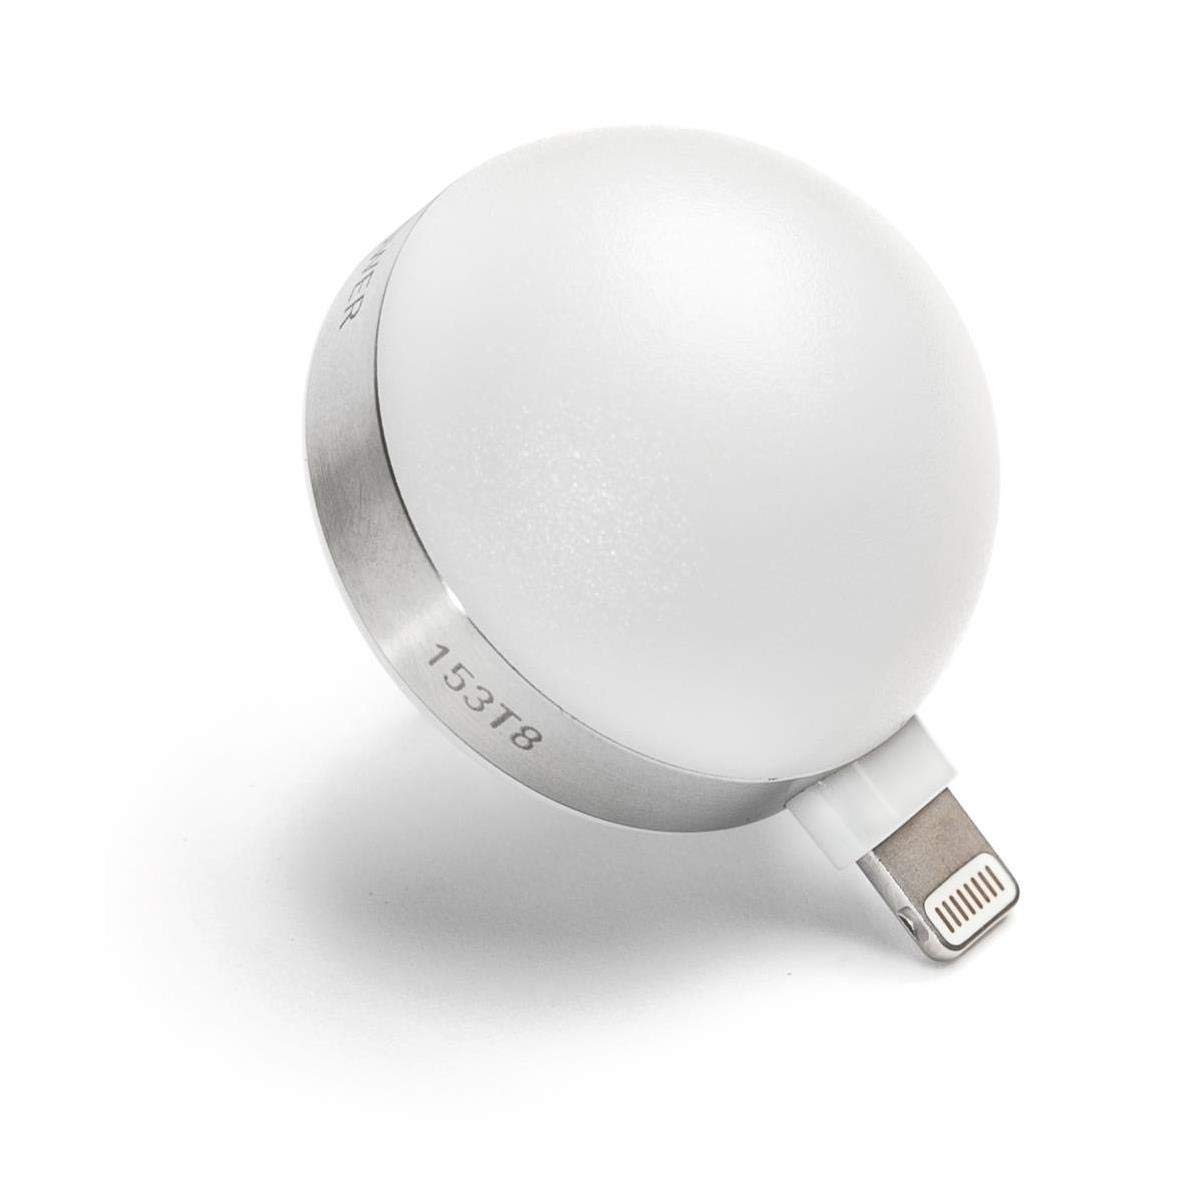 Lumu Power 2 Lite Light and Color Meter for iPhone by Lumu